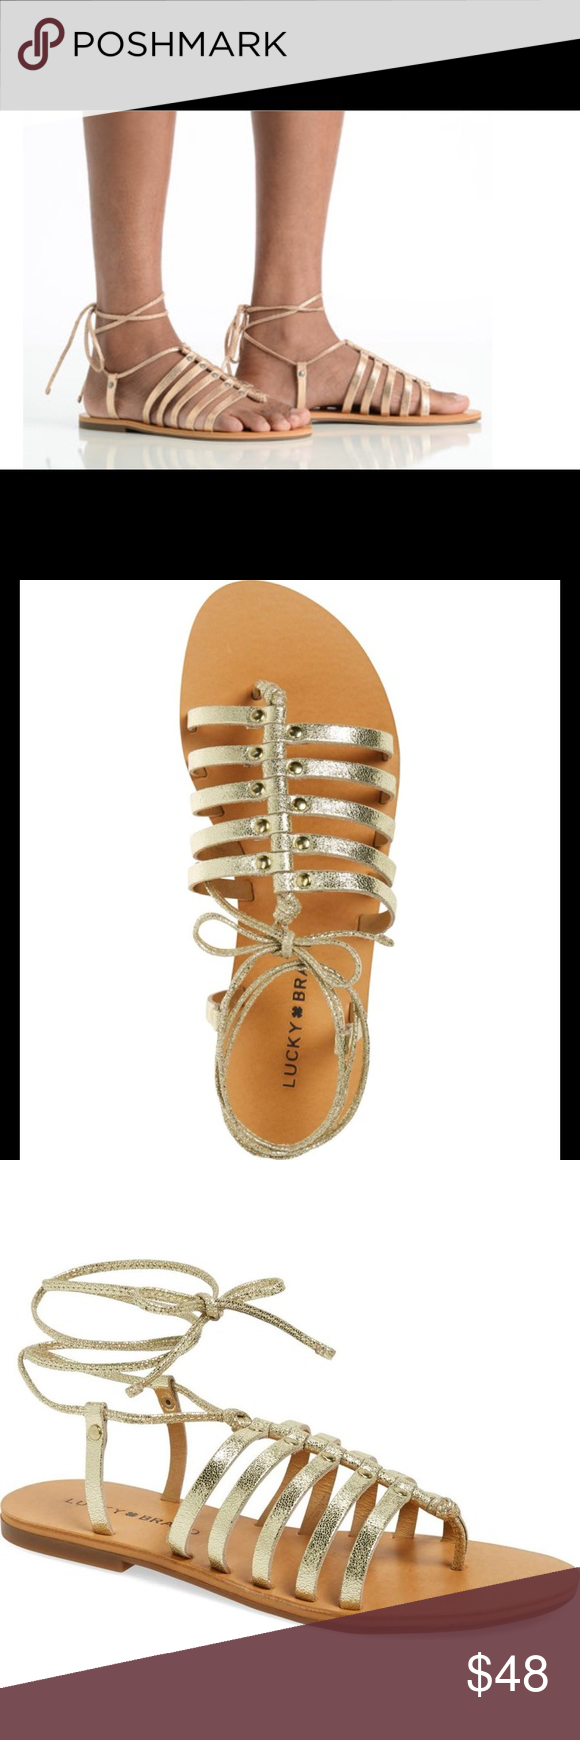 7dd00cab88f5 🆕LUCKY BRAND COLLETTE LACEUP GLADIATOR SANDAL(Sz7 LUCKY BRAND COLLETTE  LACE UP GLADIATOR SANDAL